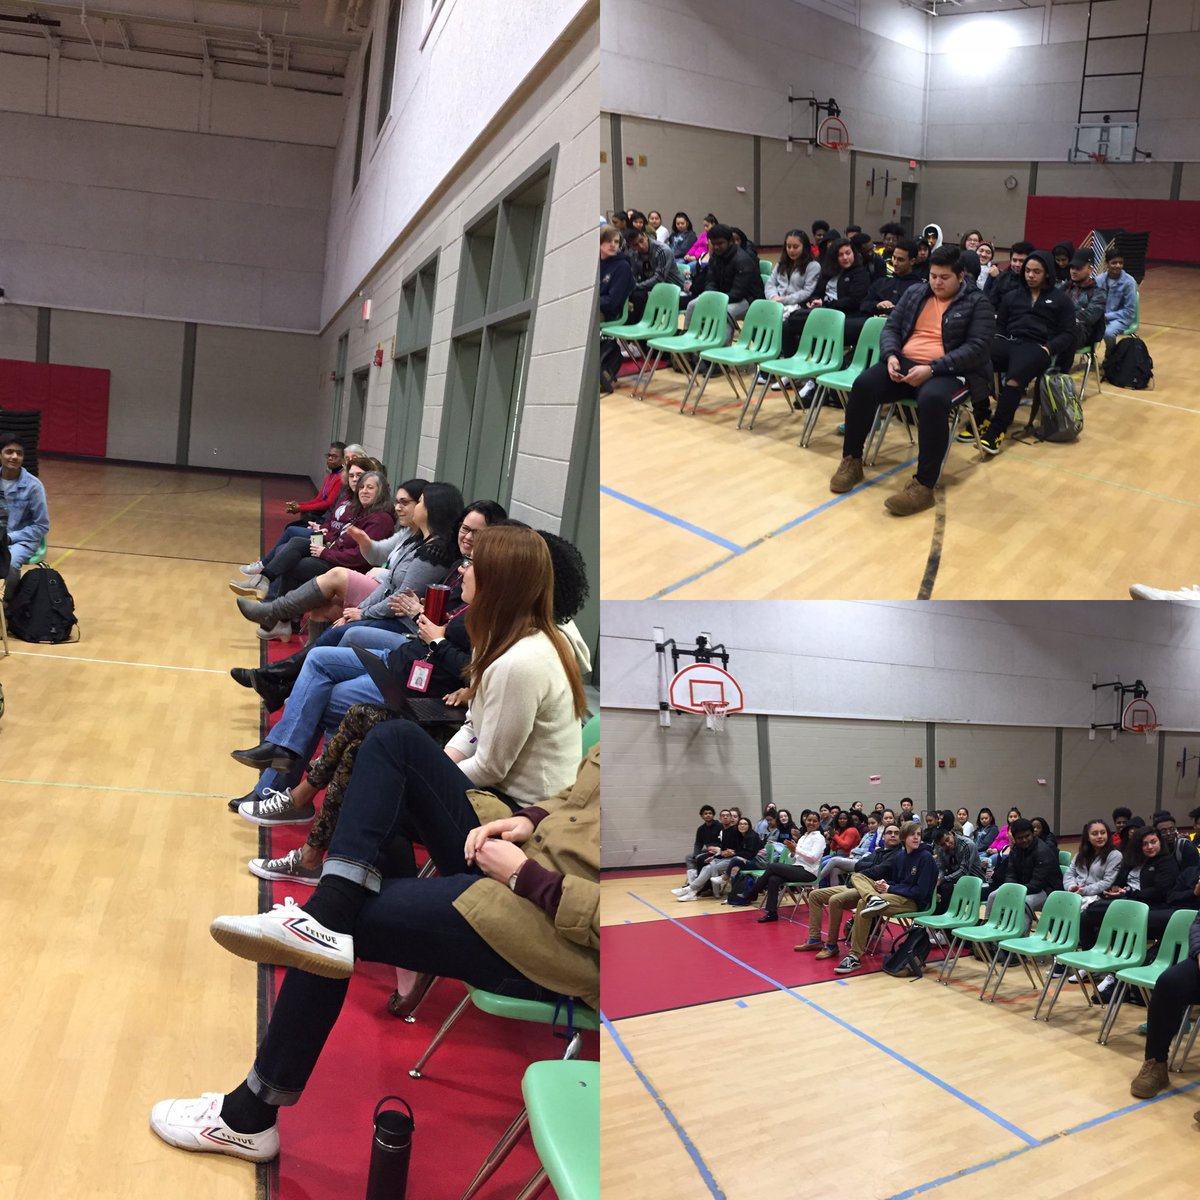 2nd semester Town Hall Meeting <a target='_blank' href='https://t.co/quwEl1GJyG'>https://t.co/quwEl1GJyG</a>